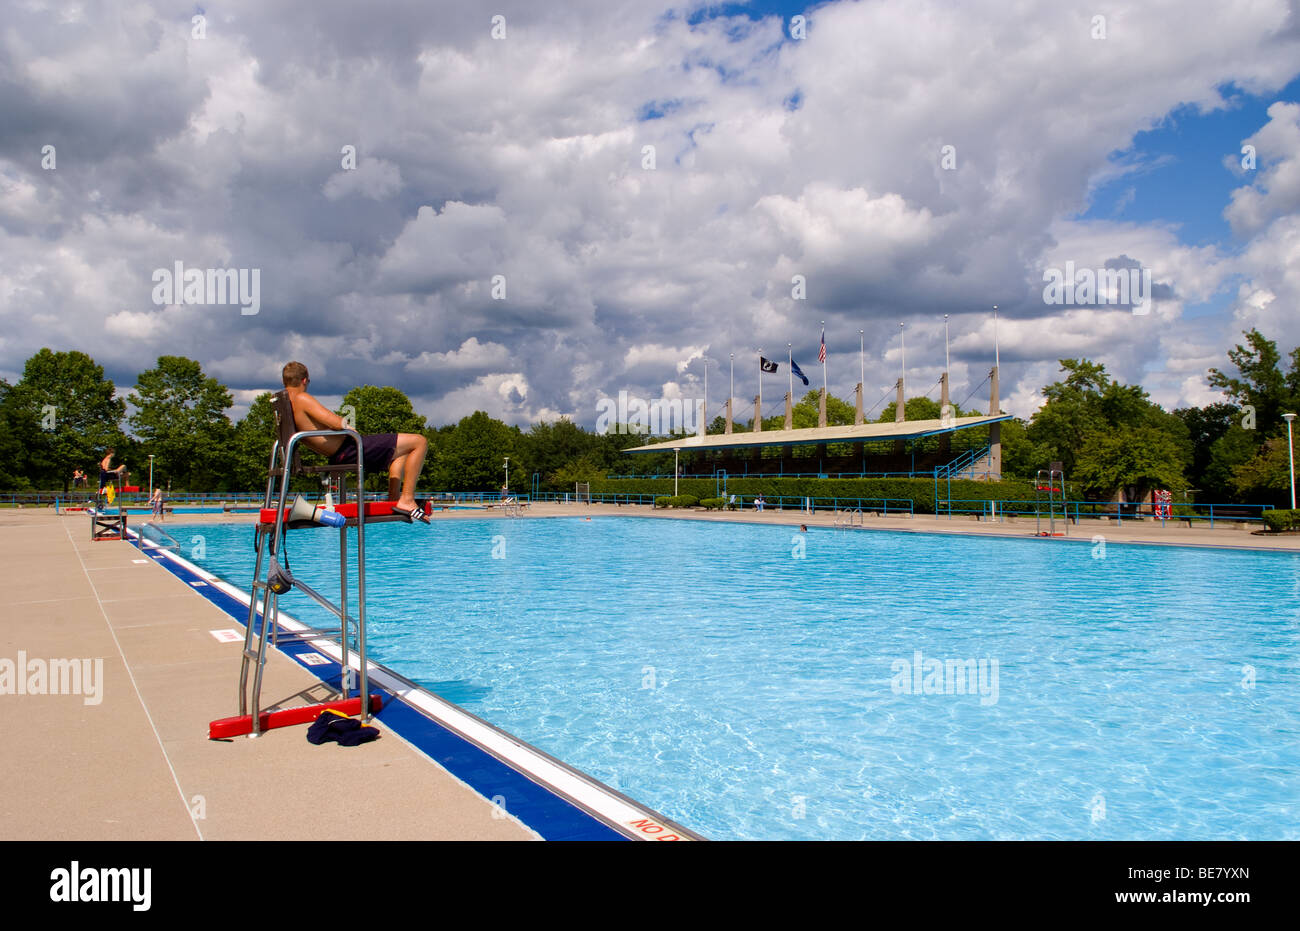 Large public swimming pool with life guard at Letchworth ...